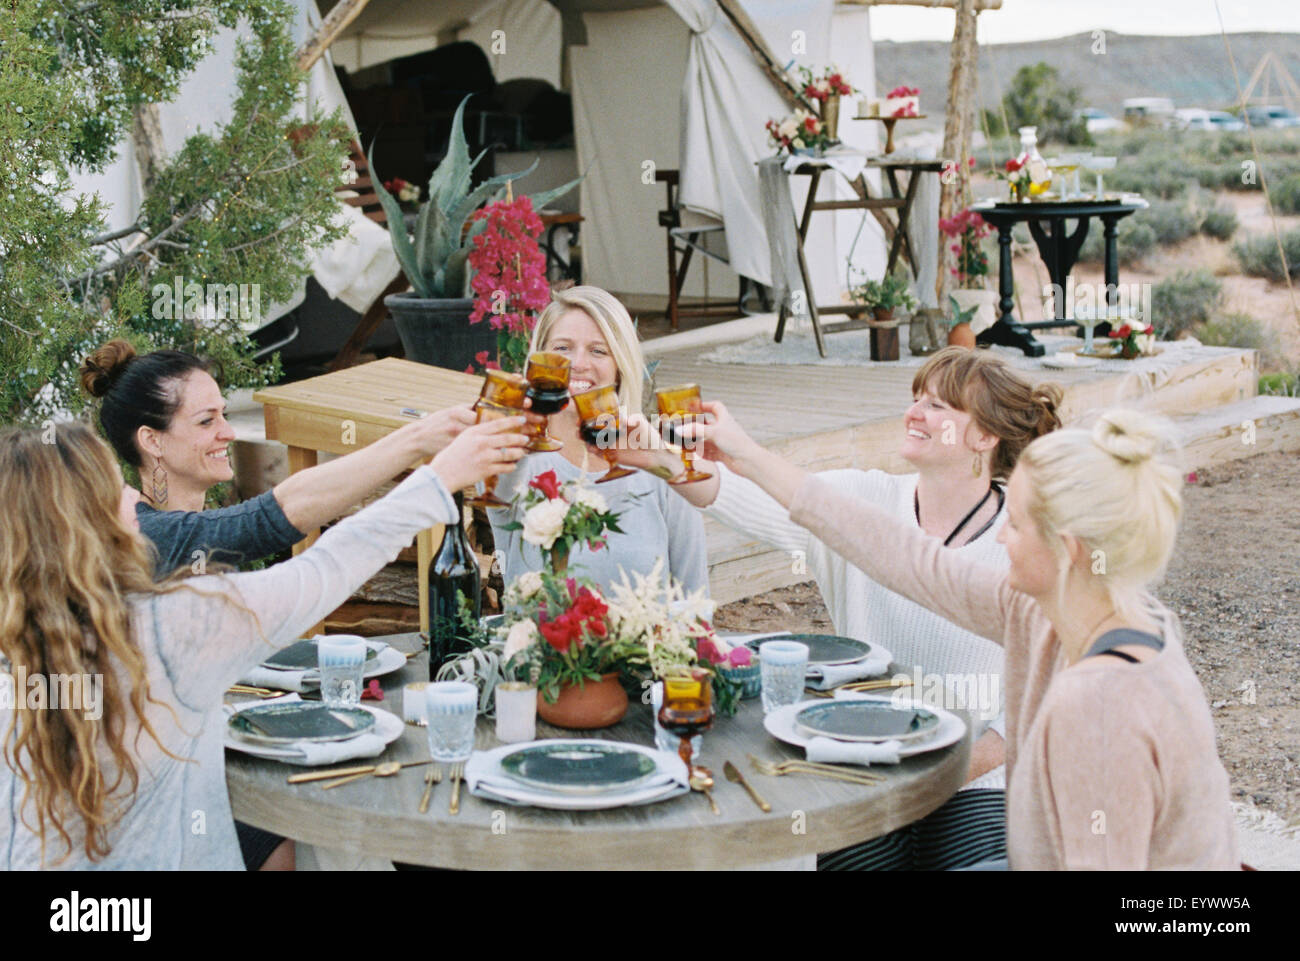 A group of women enjoying an outdoor meal by a large tent, in a desert landscape, raising a toast by clinking glasses. - Stock Image